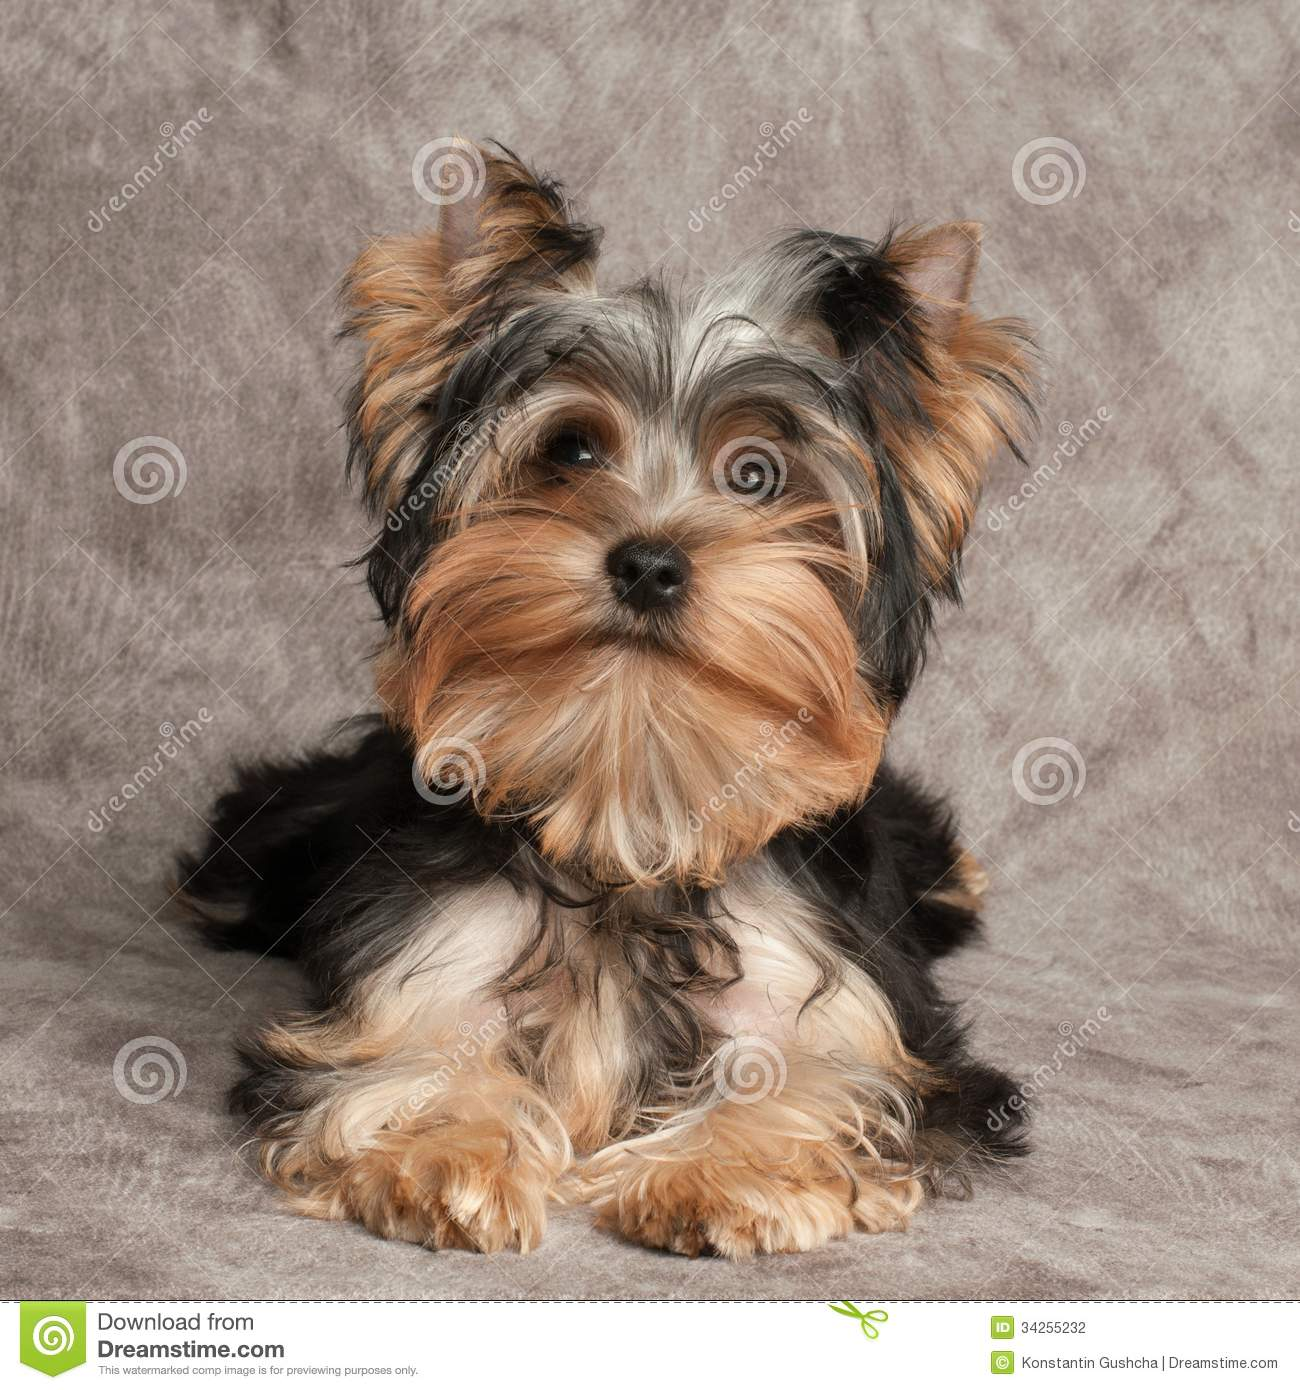 One shaggy puppy of the Yorkshire Terrier on textile background. Yorkshire Terrier 911